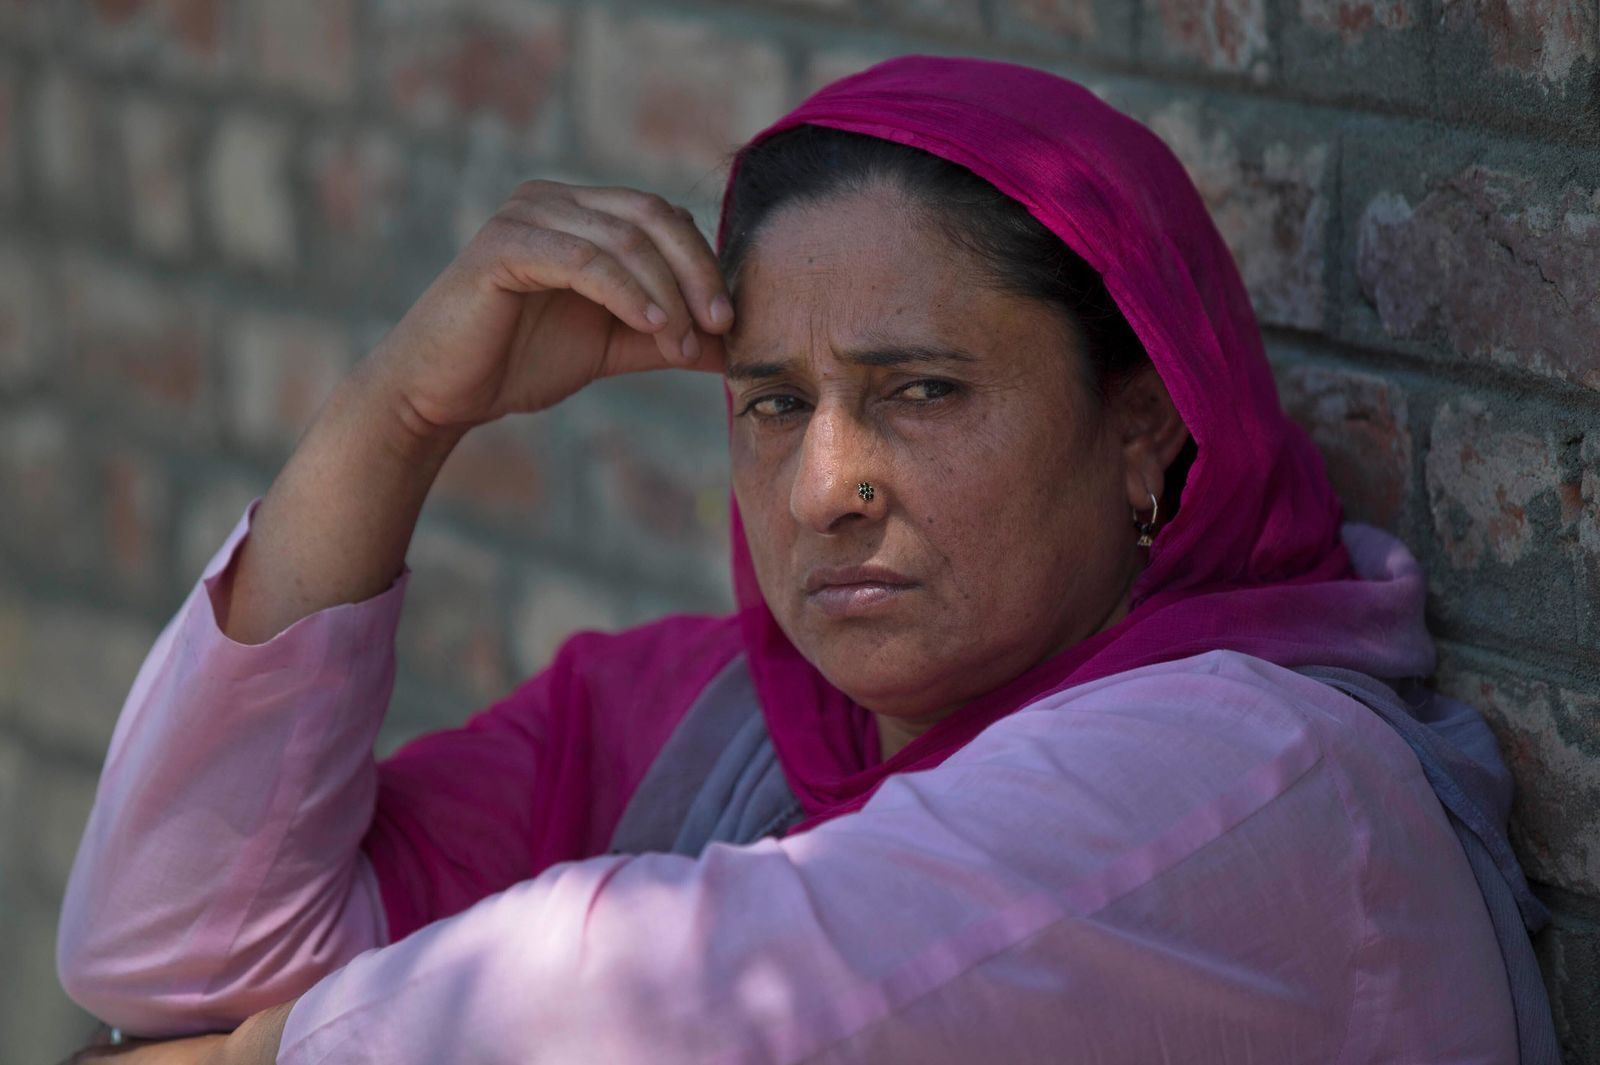 A Kashmiri woman sits on a footpath outside a police station waiting to hear the news about her relative who was detained during night raids in Srinagar, Indian controlled Kashmir, Tuesday, Aug. 20, 2019. Authorities say thousands of people, mostly young male protesters, have been arrested and detained in Indian-administered Kashmir amid an ongoing communications blackout and security lockdown. (AP Photo/ Dar Yasin)